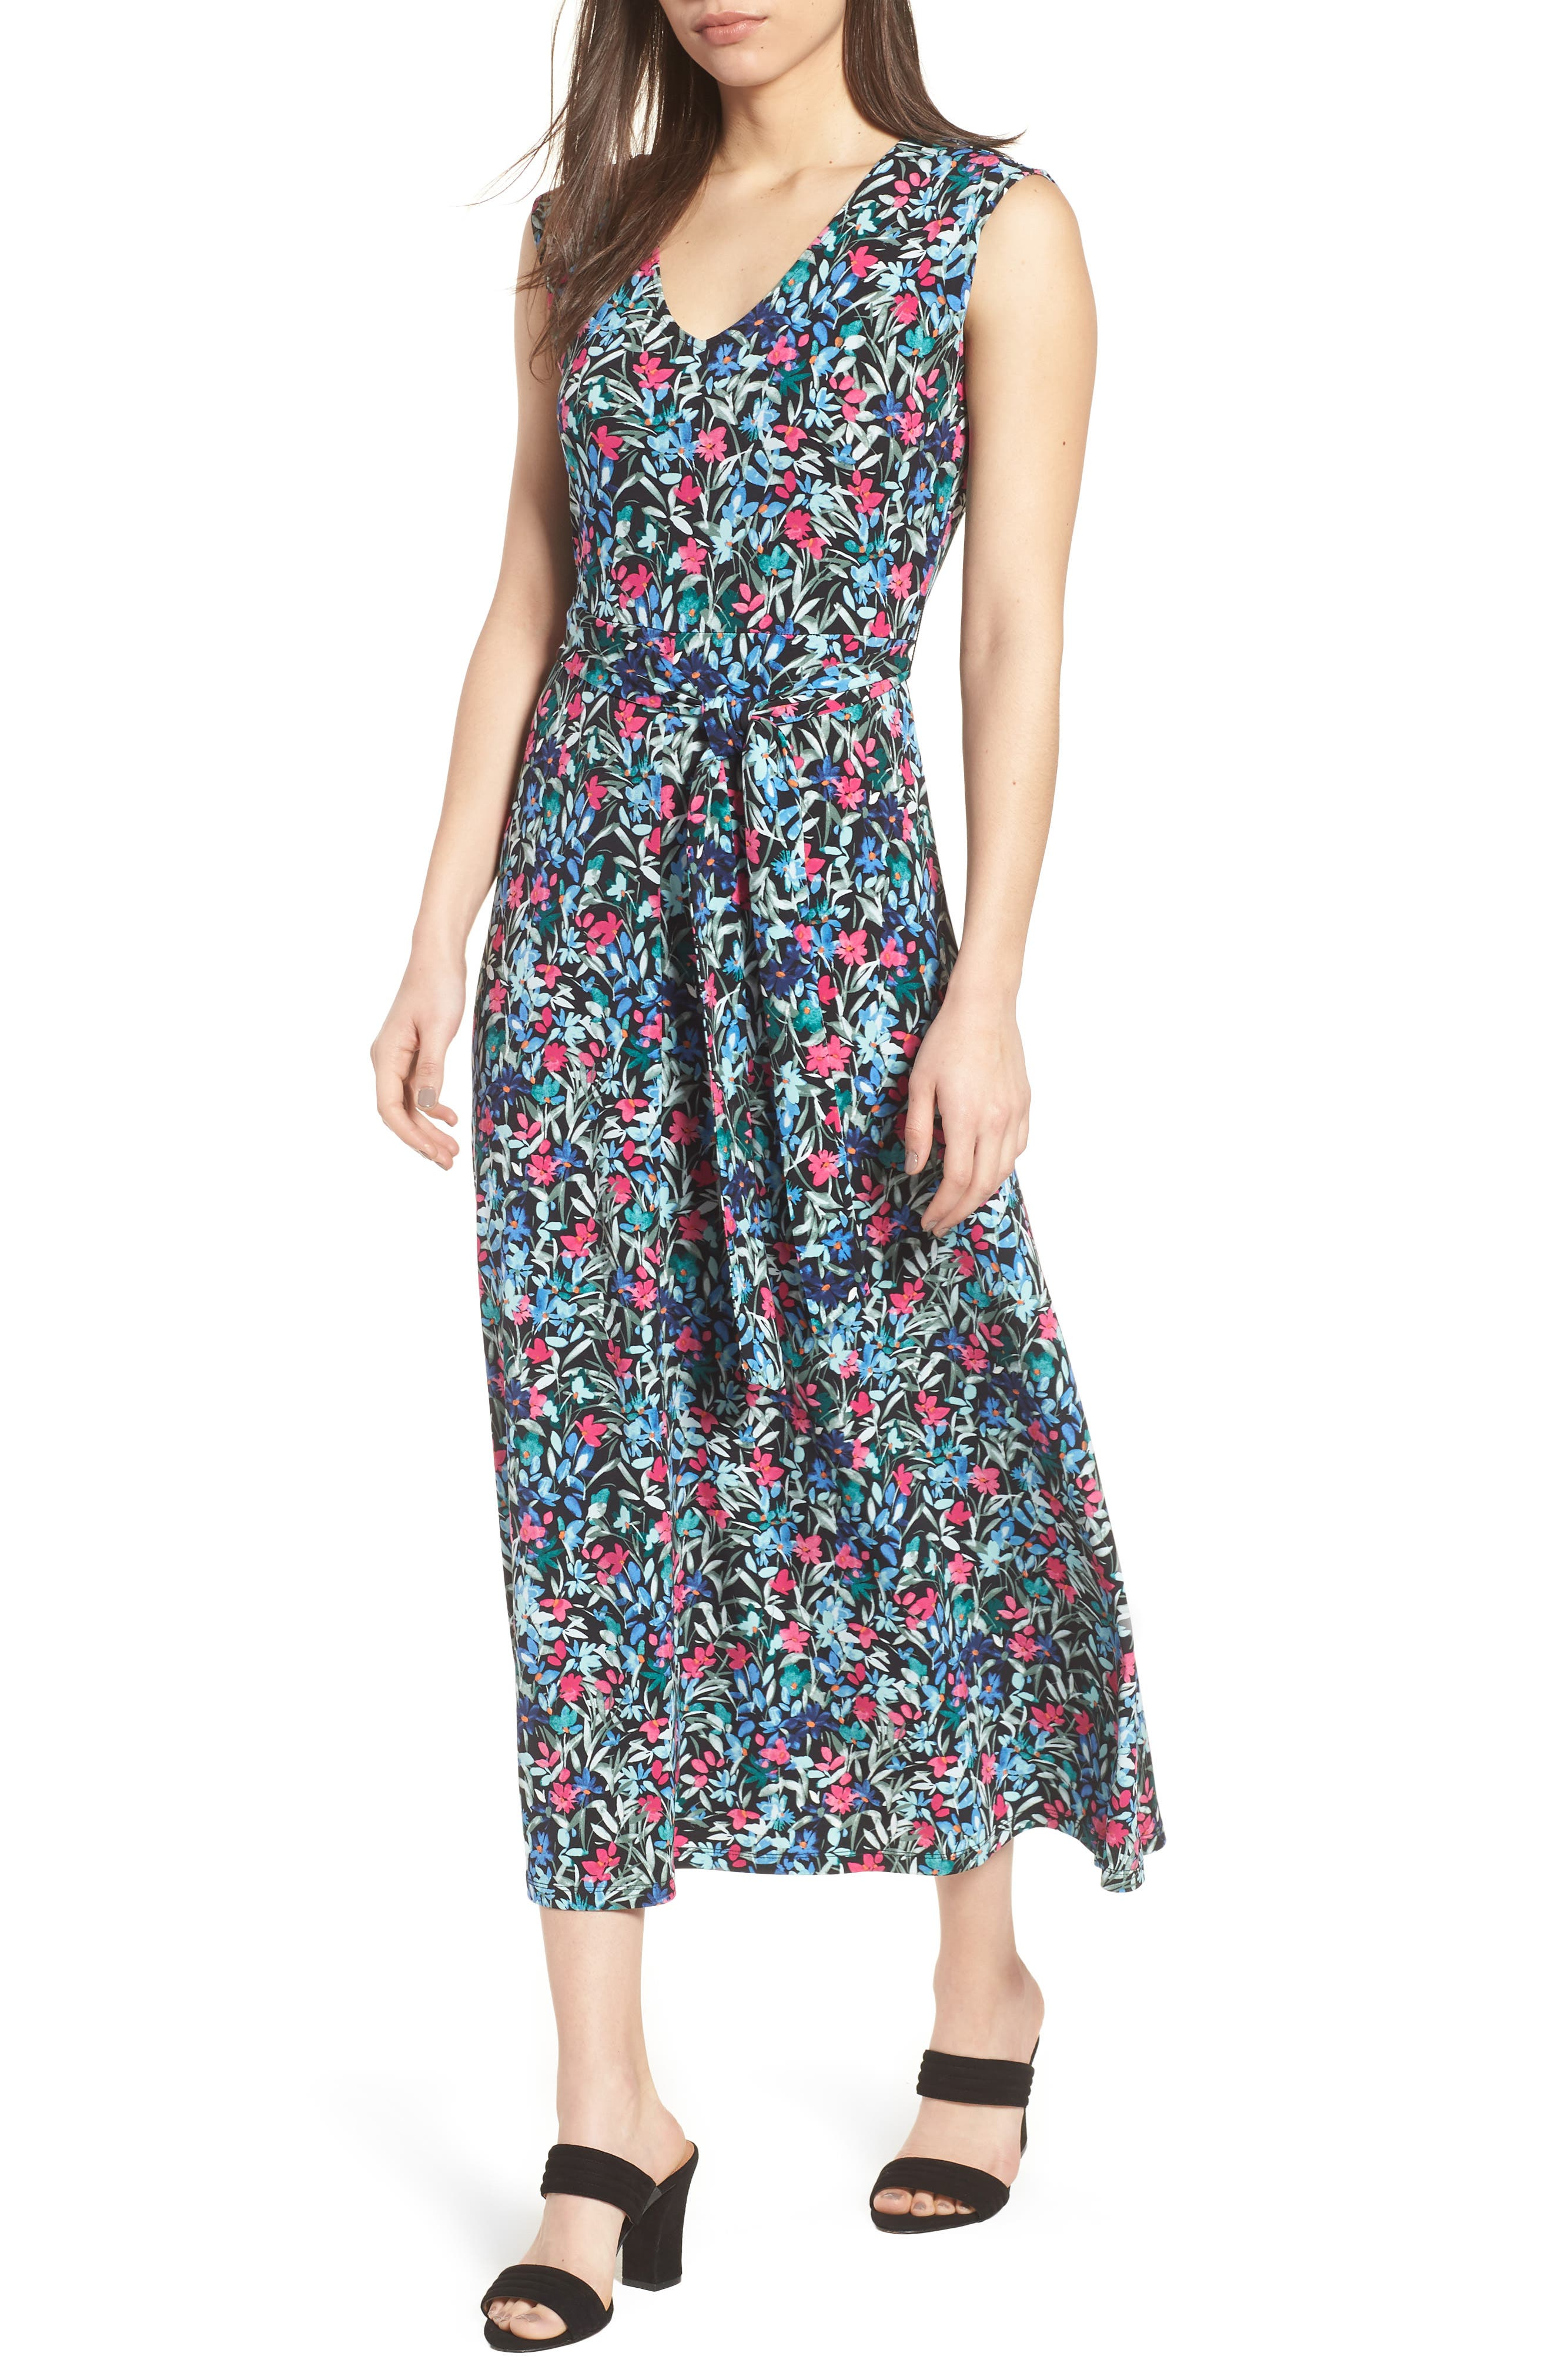 Radiant Flowers Sleeveless Tie Waist Dress,                         Main,                         color, 060-Rich Black